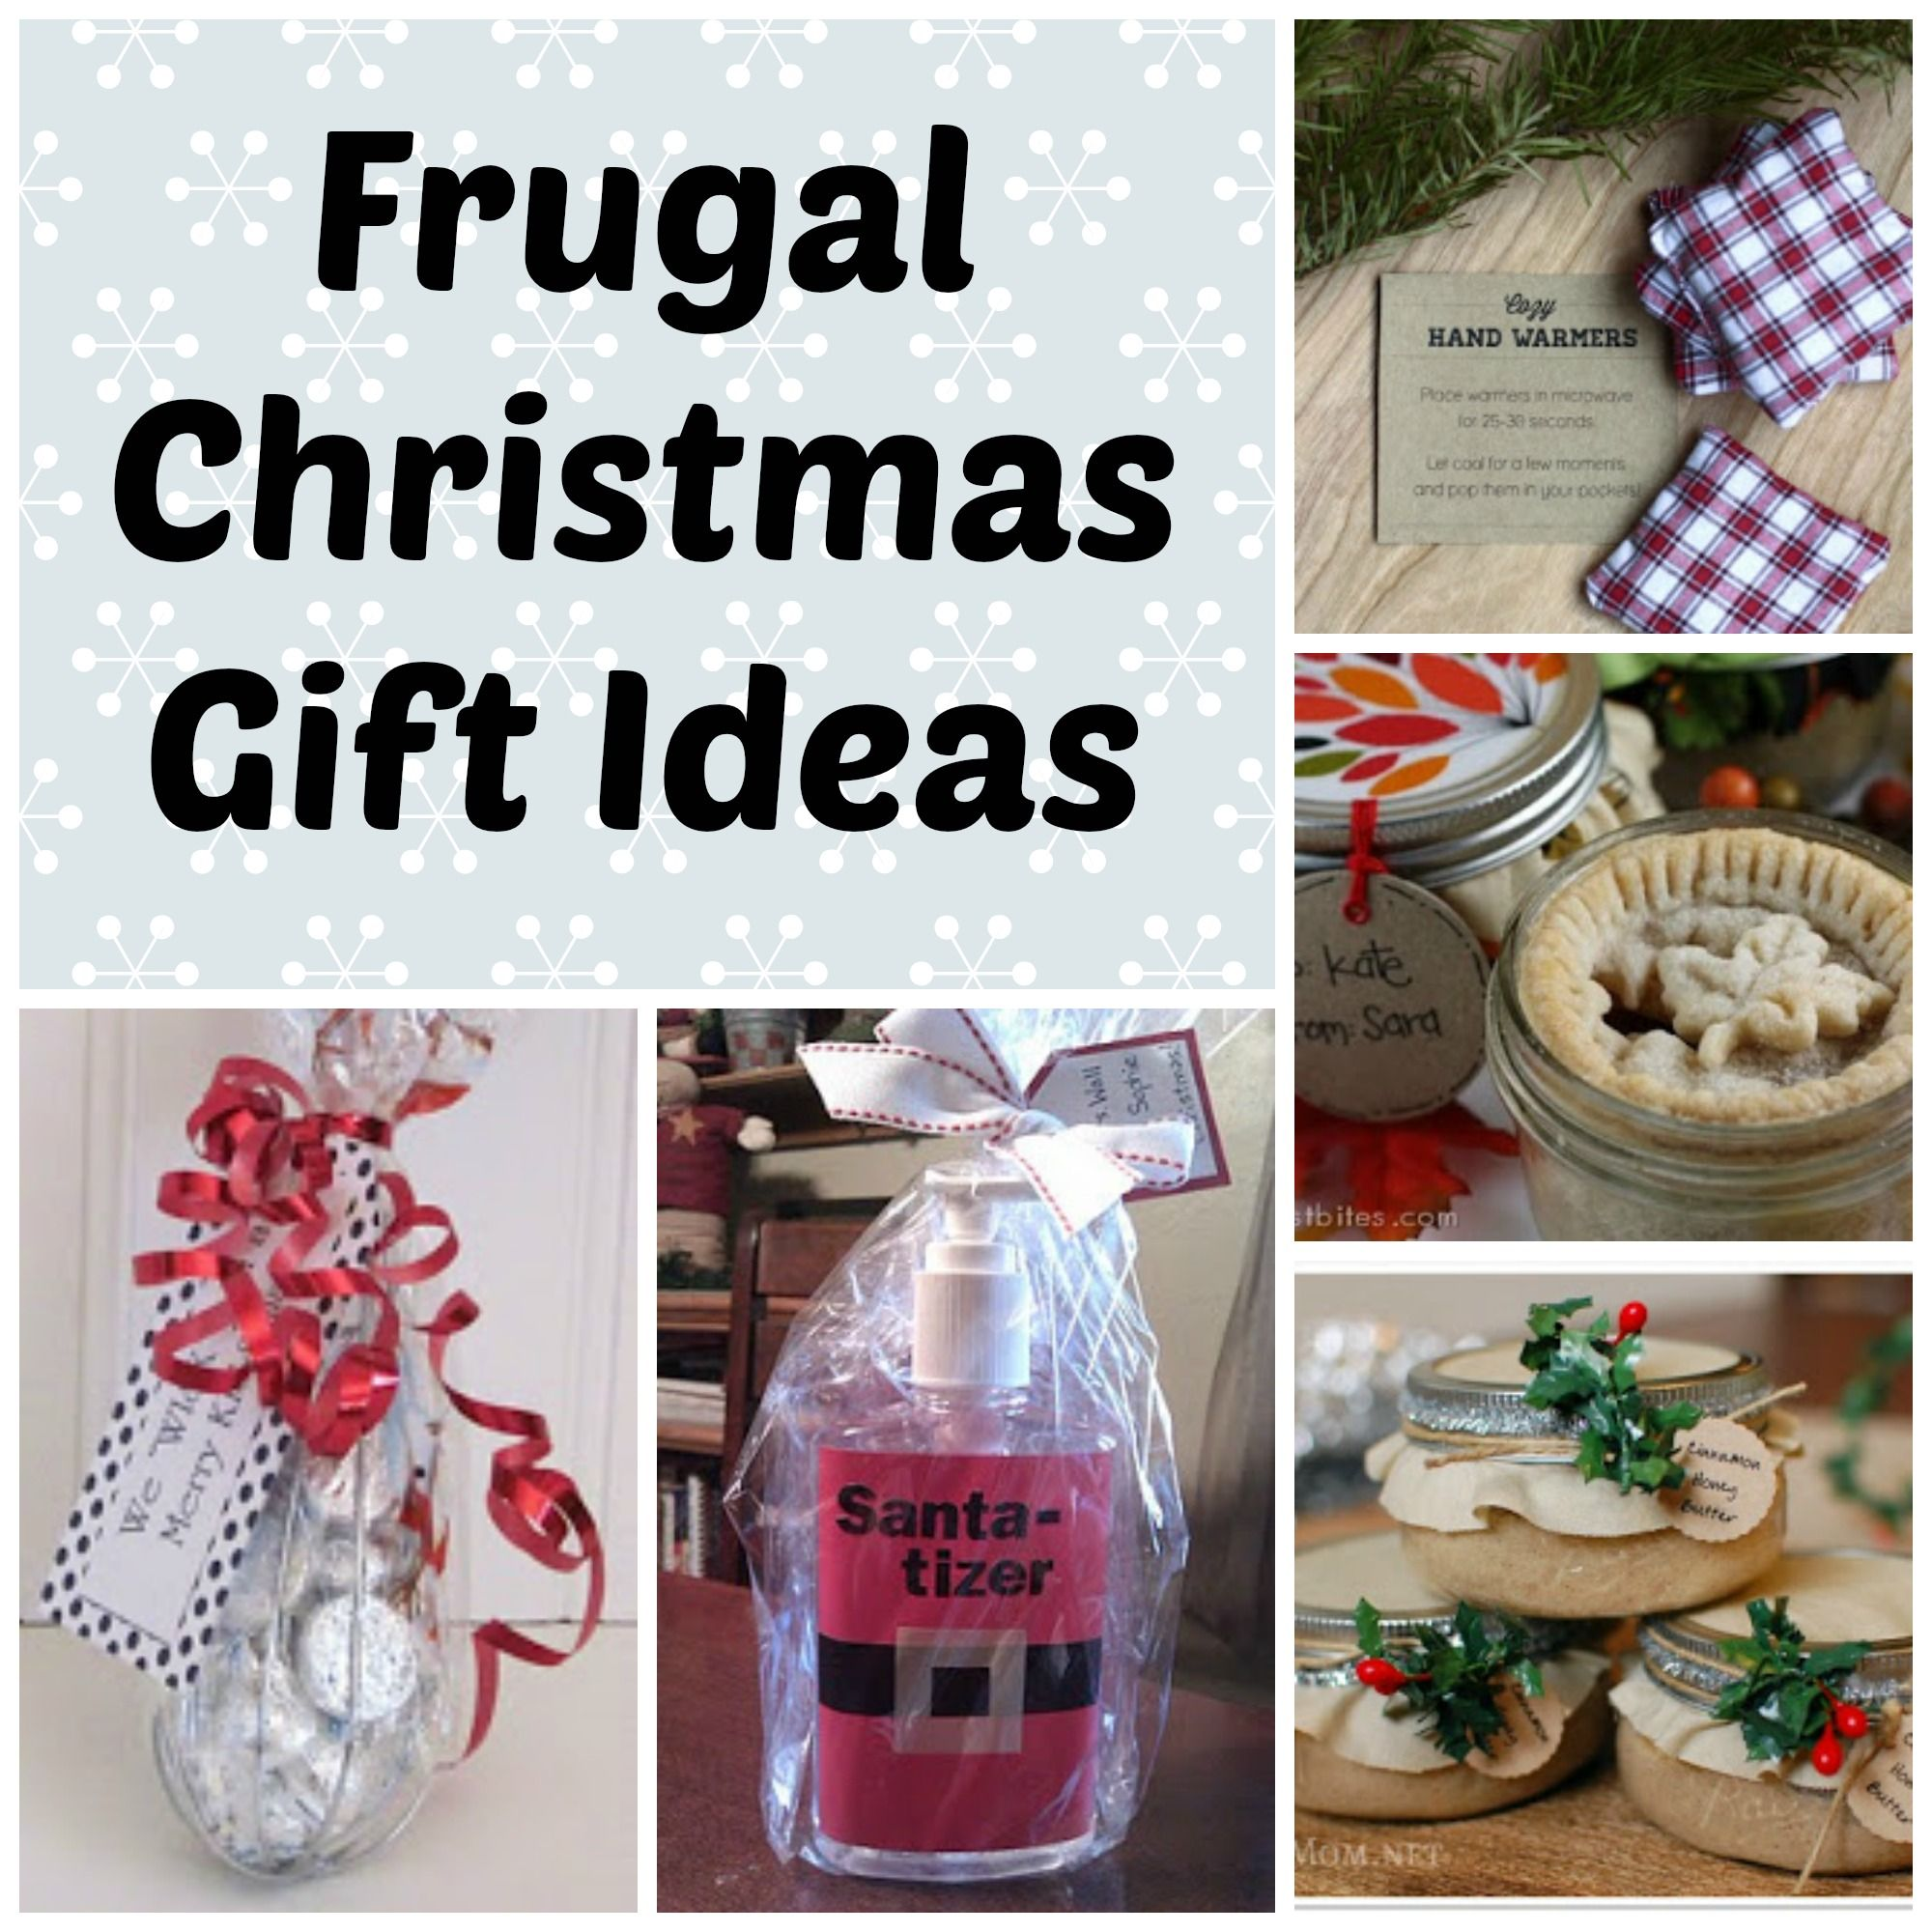 Frugal Christmas Gift Ideas Part 4